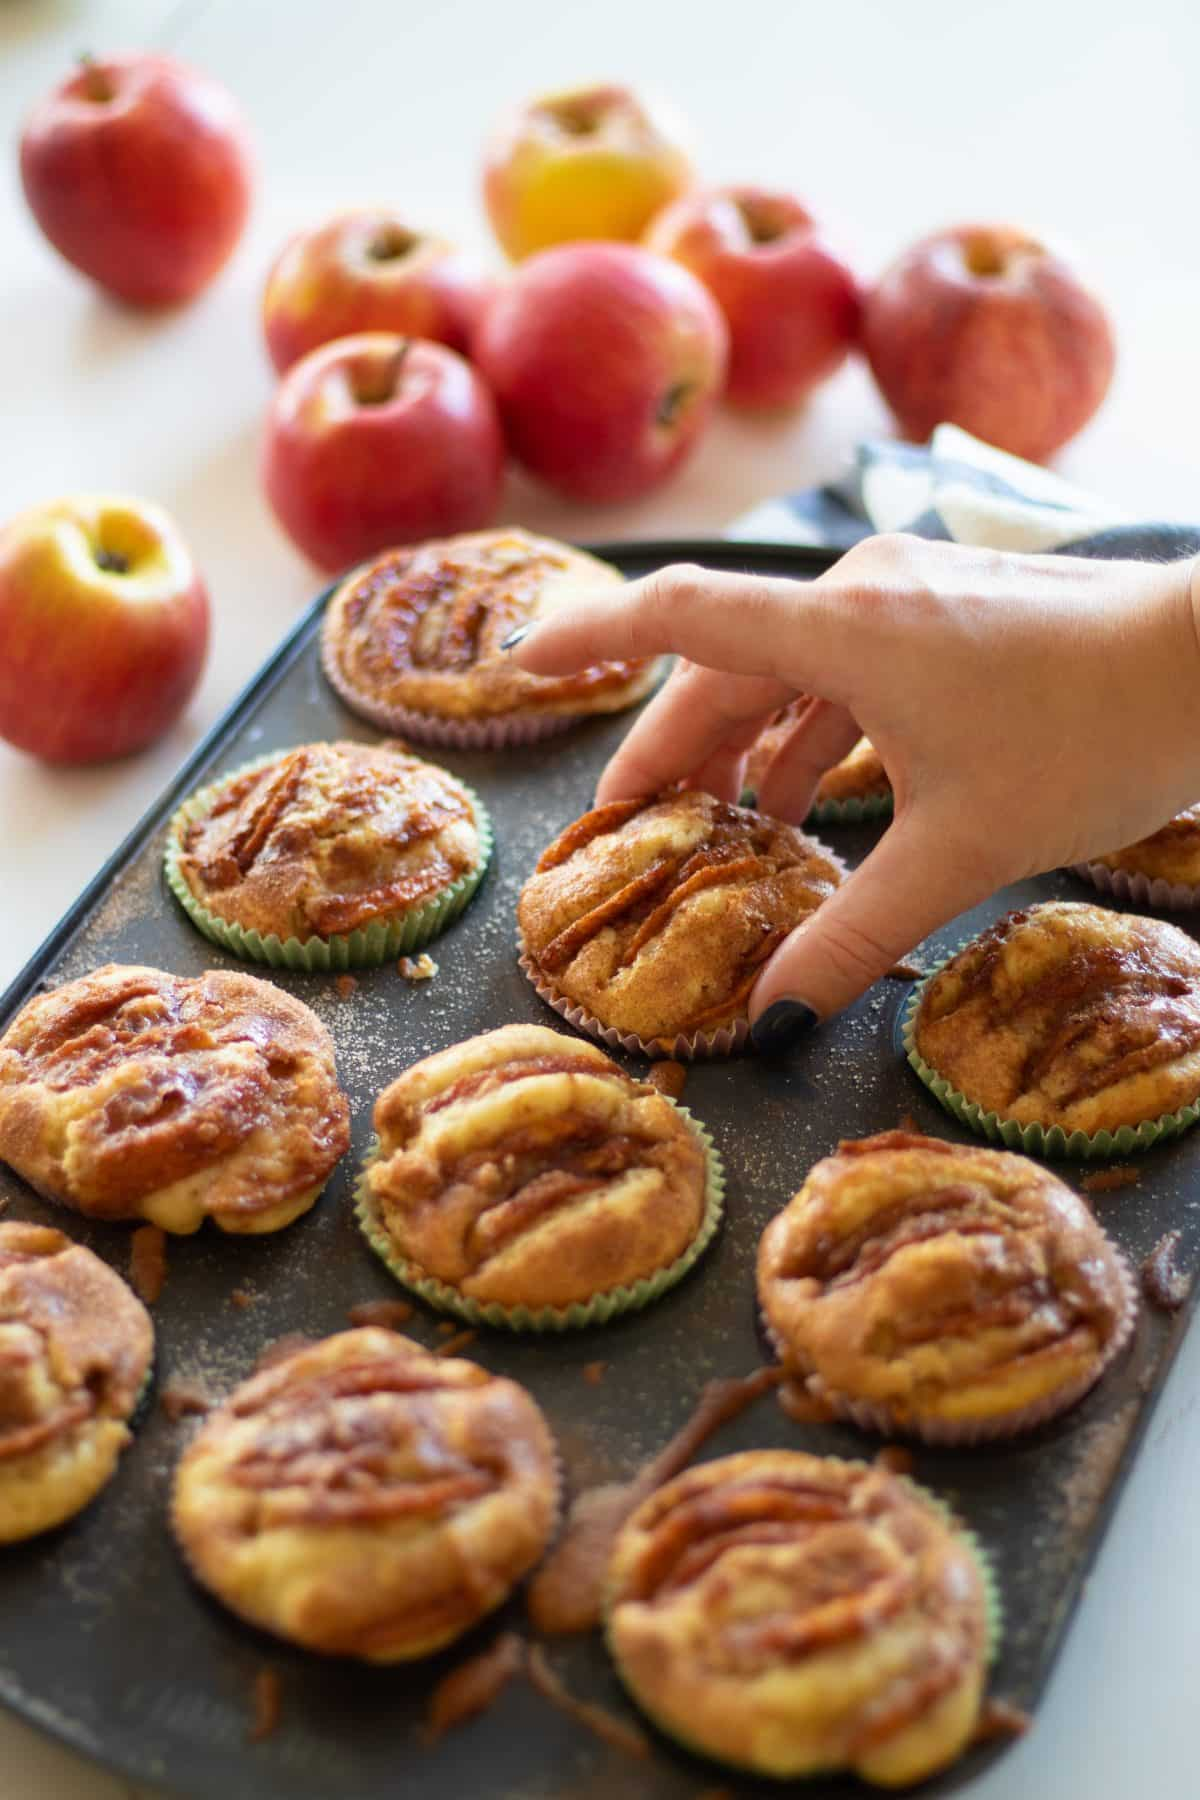 picking up an apple muffin from a muffin tin filled with apple muffins